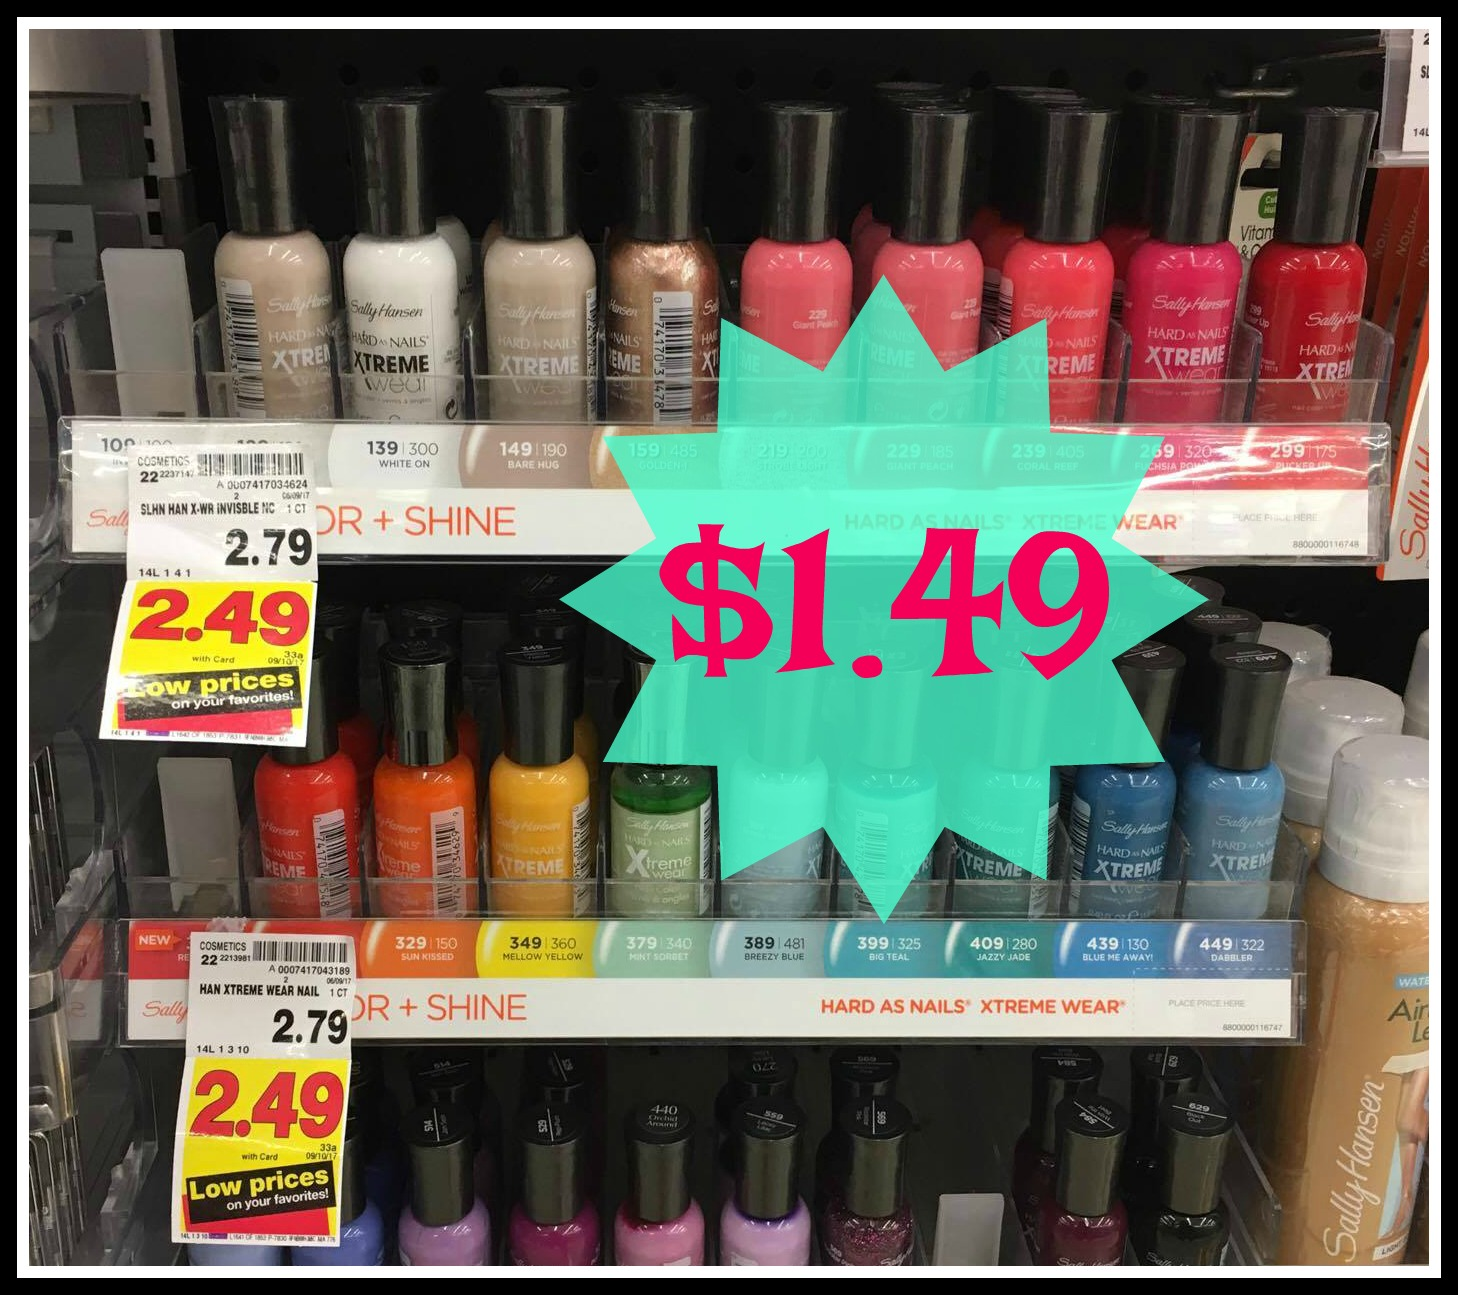 New Sally Hansen Nail Product Coupons Great Kroger Deals On Polish